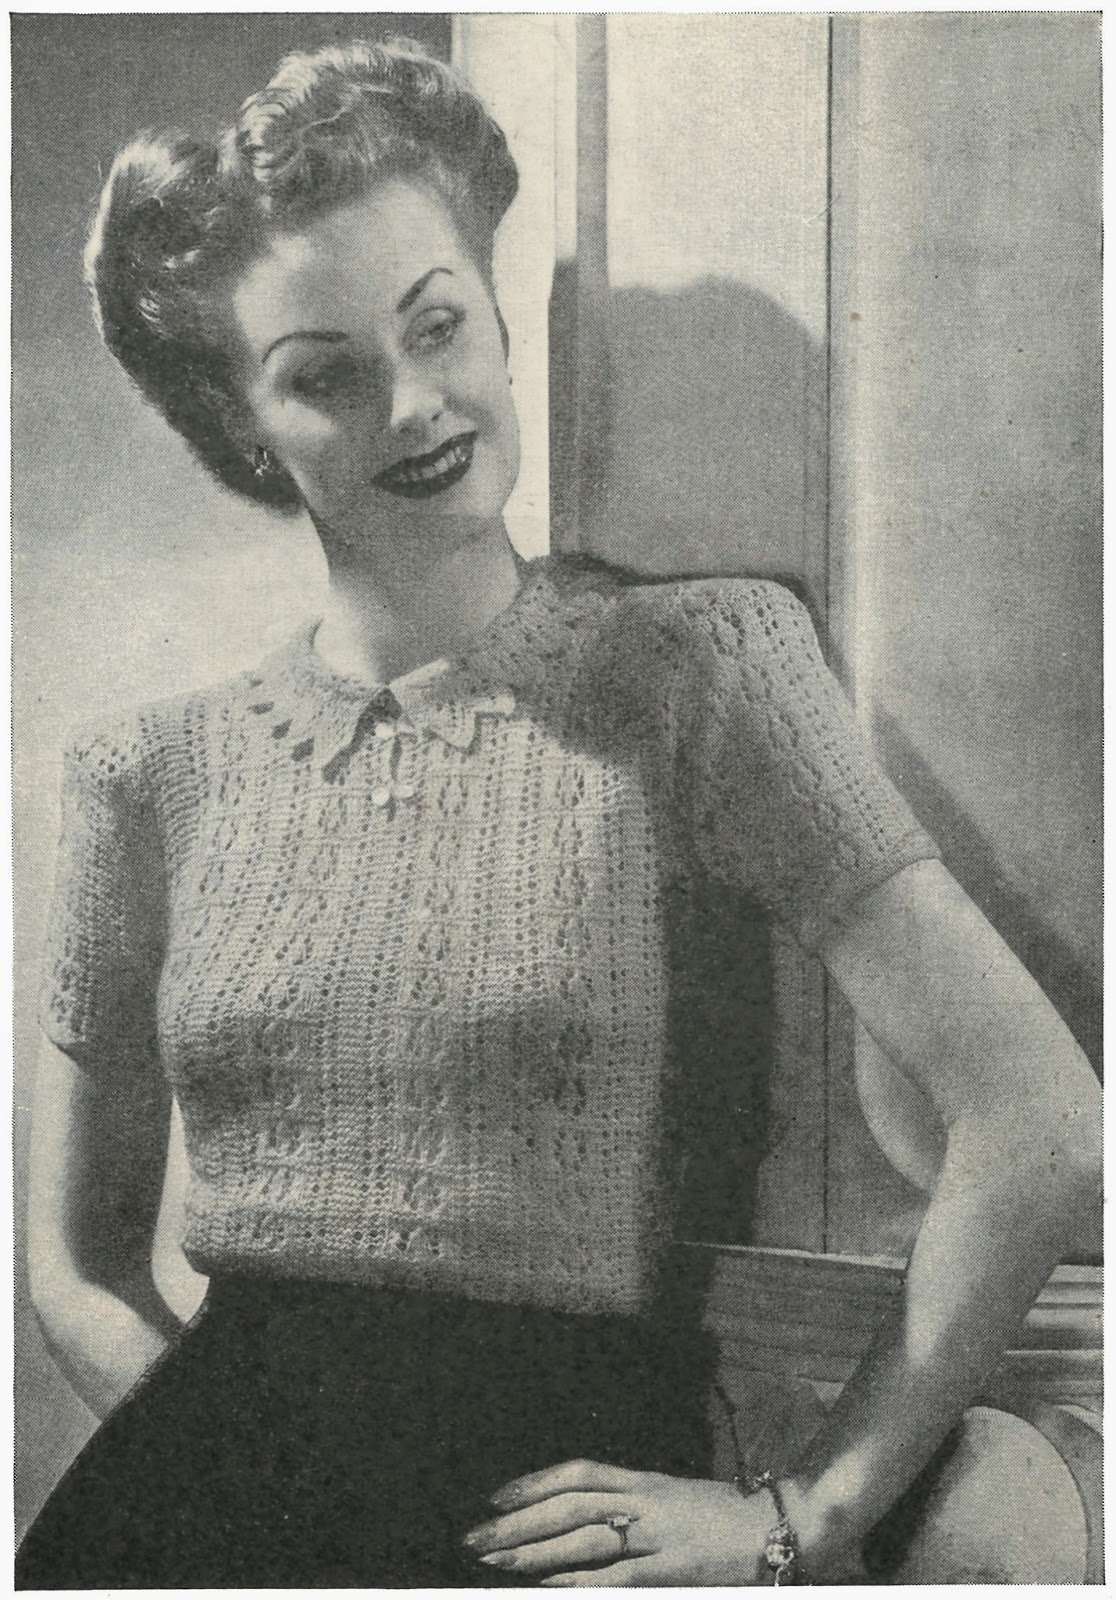 1940s lace jersey